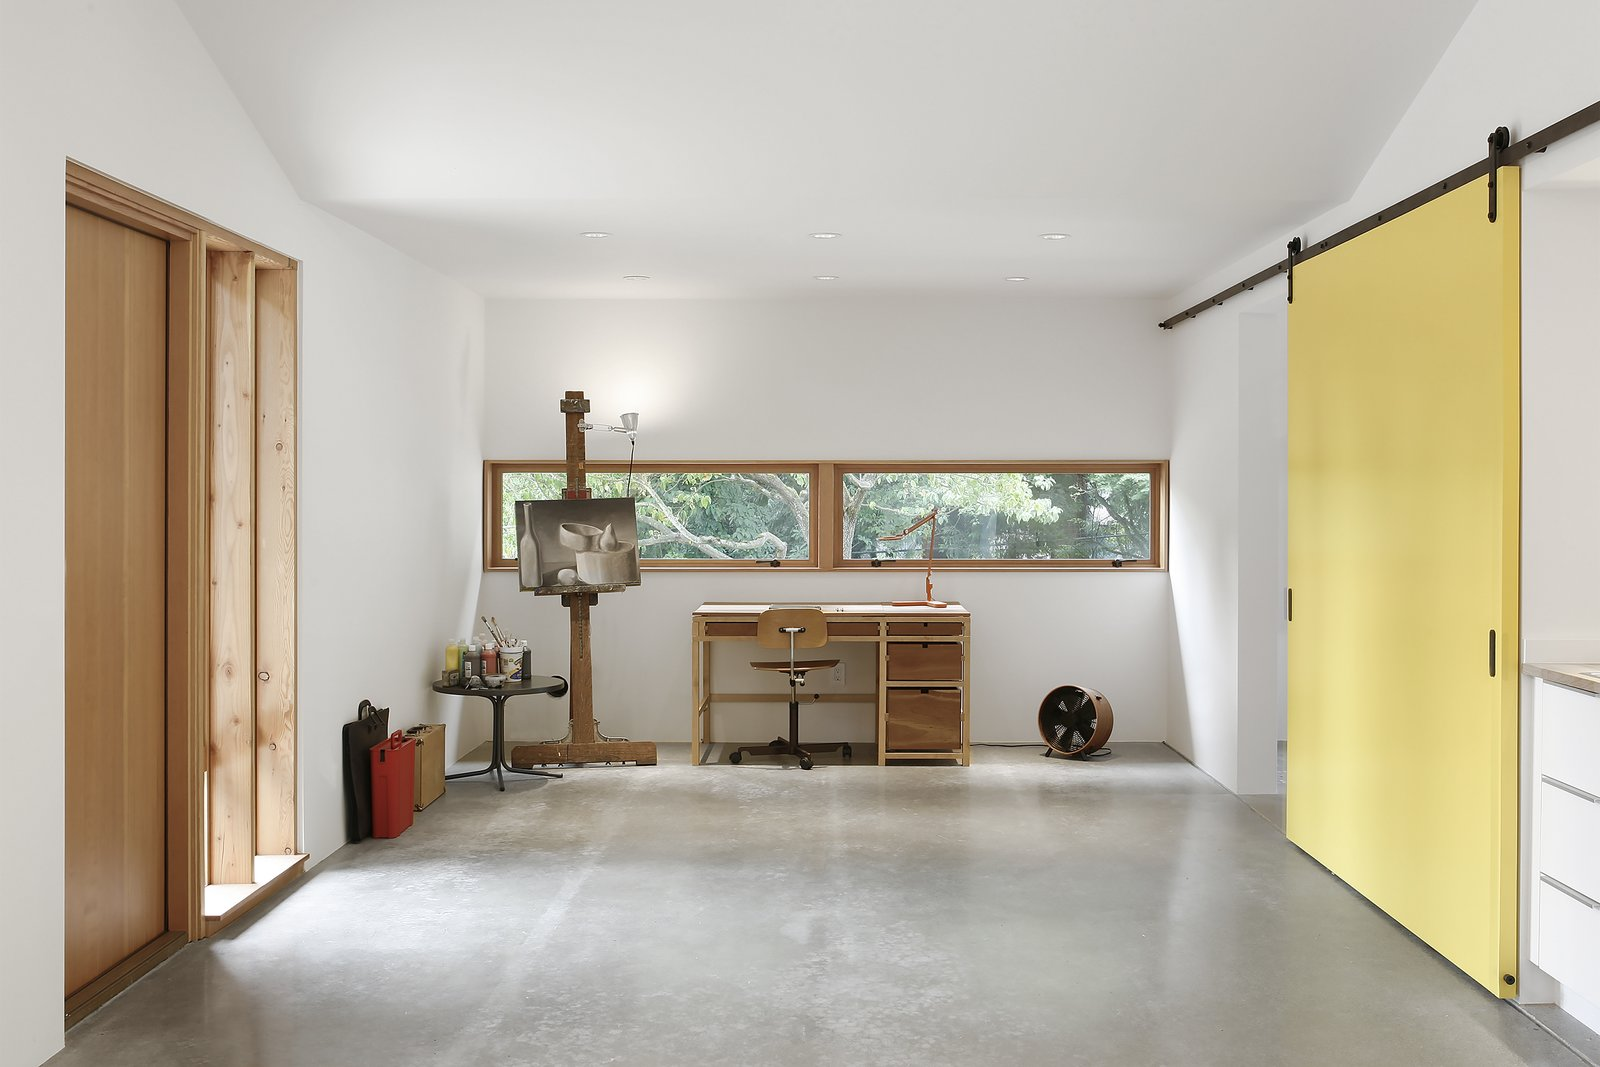 """Office, Craft Room Room Type, Desk, Chair, and Concrete Floor """"Concrete floors, drywall, and minimal use of trim allowed for the feel of the space to remain utilitarian, while exposed Douglas fir structural members created a connection to regional Pacific Northwest design,"""" Schaer says. The clients wanted a place for painting and occasional freelance work, which fits opposite the room's fireplace and seating area. A Kevi Chair by Jørgen Rasmussen accompanies the desk.  Horse Stable Studio by Kelly Dawson"""